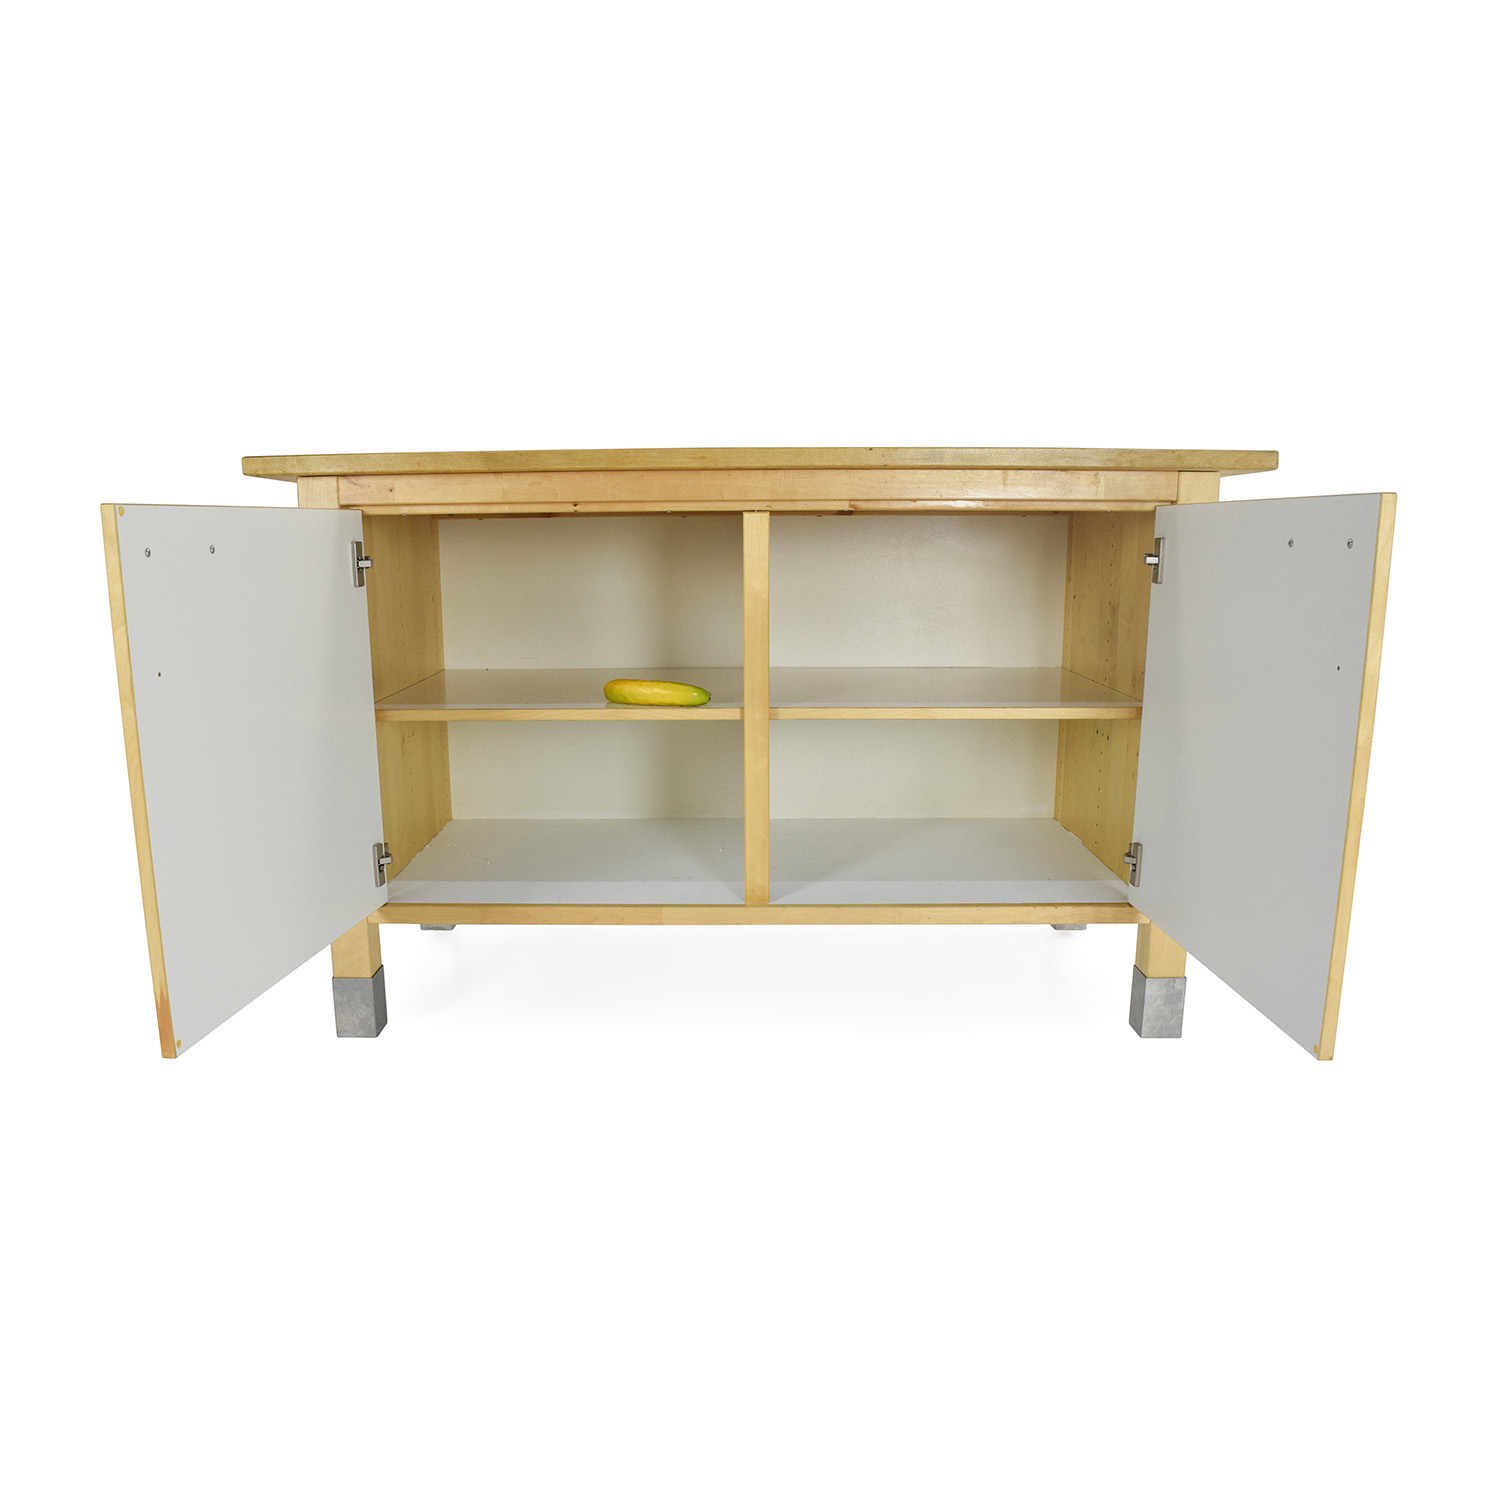 82 off ikea kitchen block cabinet table storage for Kitchen table with storage